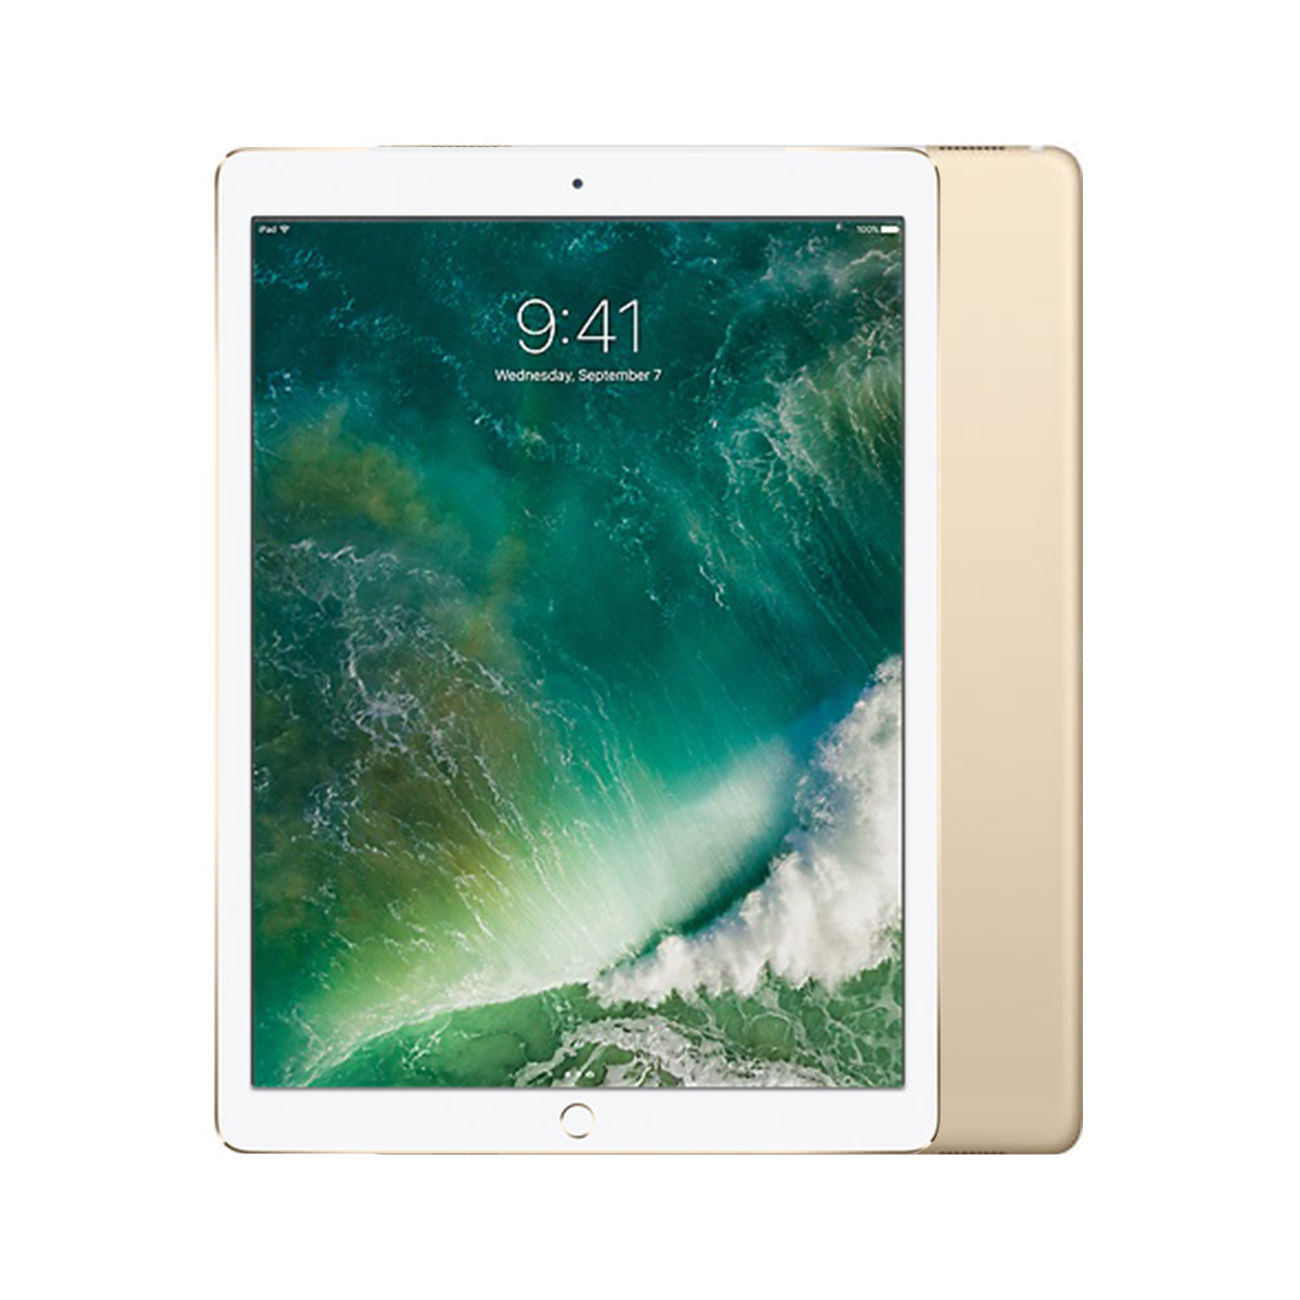 Apple iPad Pro 9.7 Wi-Fi + Cellular [256GB] [Gold] [Excellent] [12M]